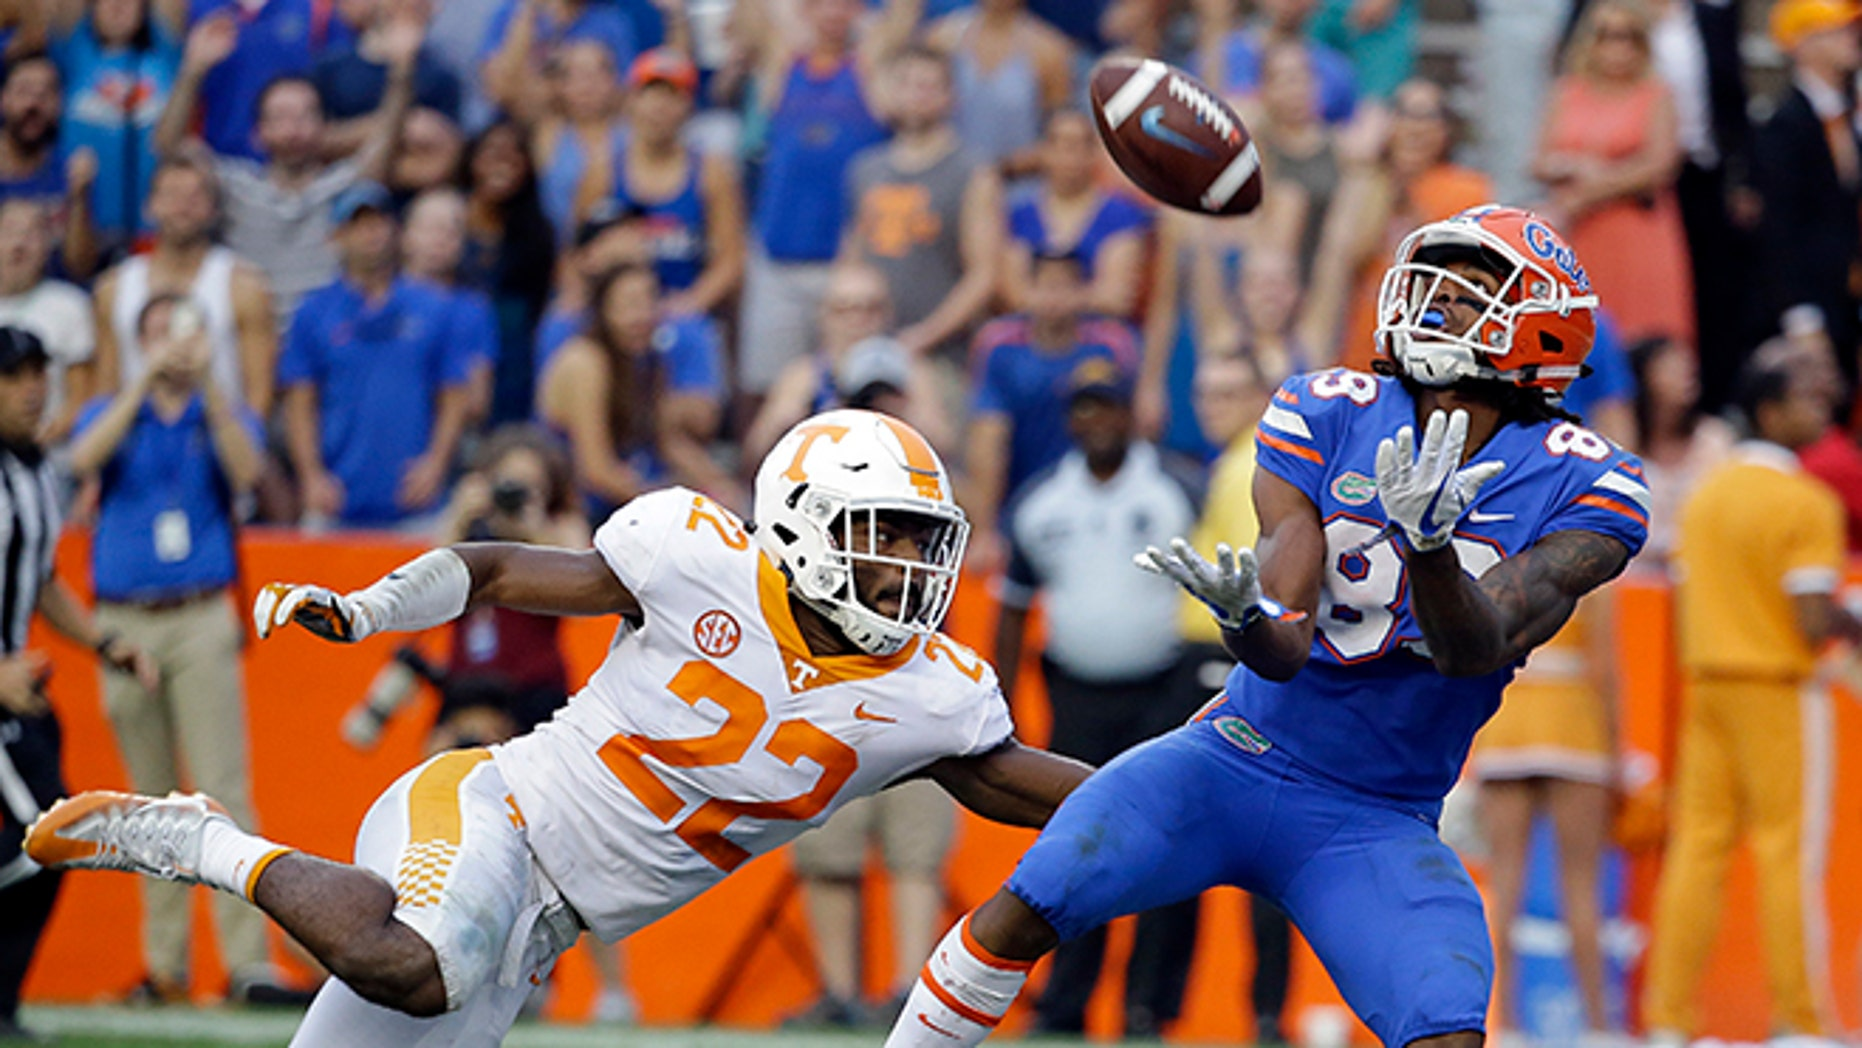 Florida wide receiver Tyrie Cleveland, right, catches the game winning 63-yard touchdown pass in front of Tennessee defensive back Micah Abernathy (22) as time expired in the fourth quarter of an NCAA college football game, Saturday.